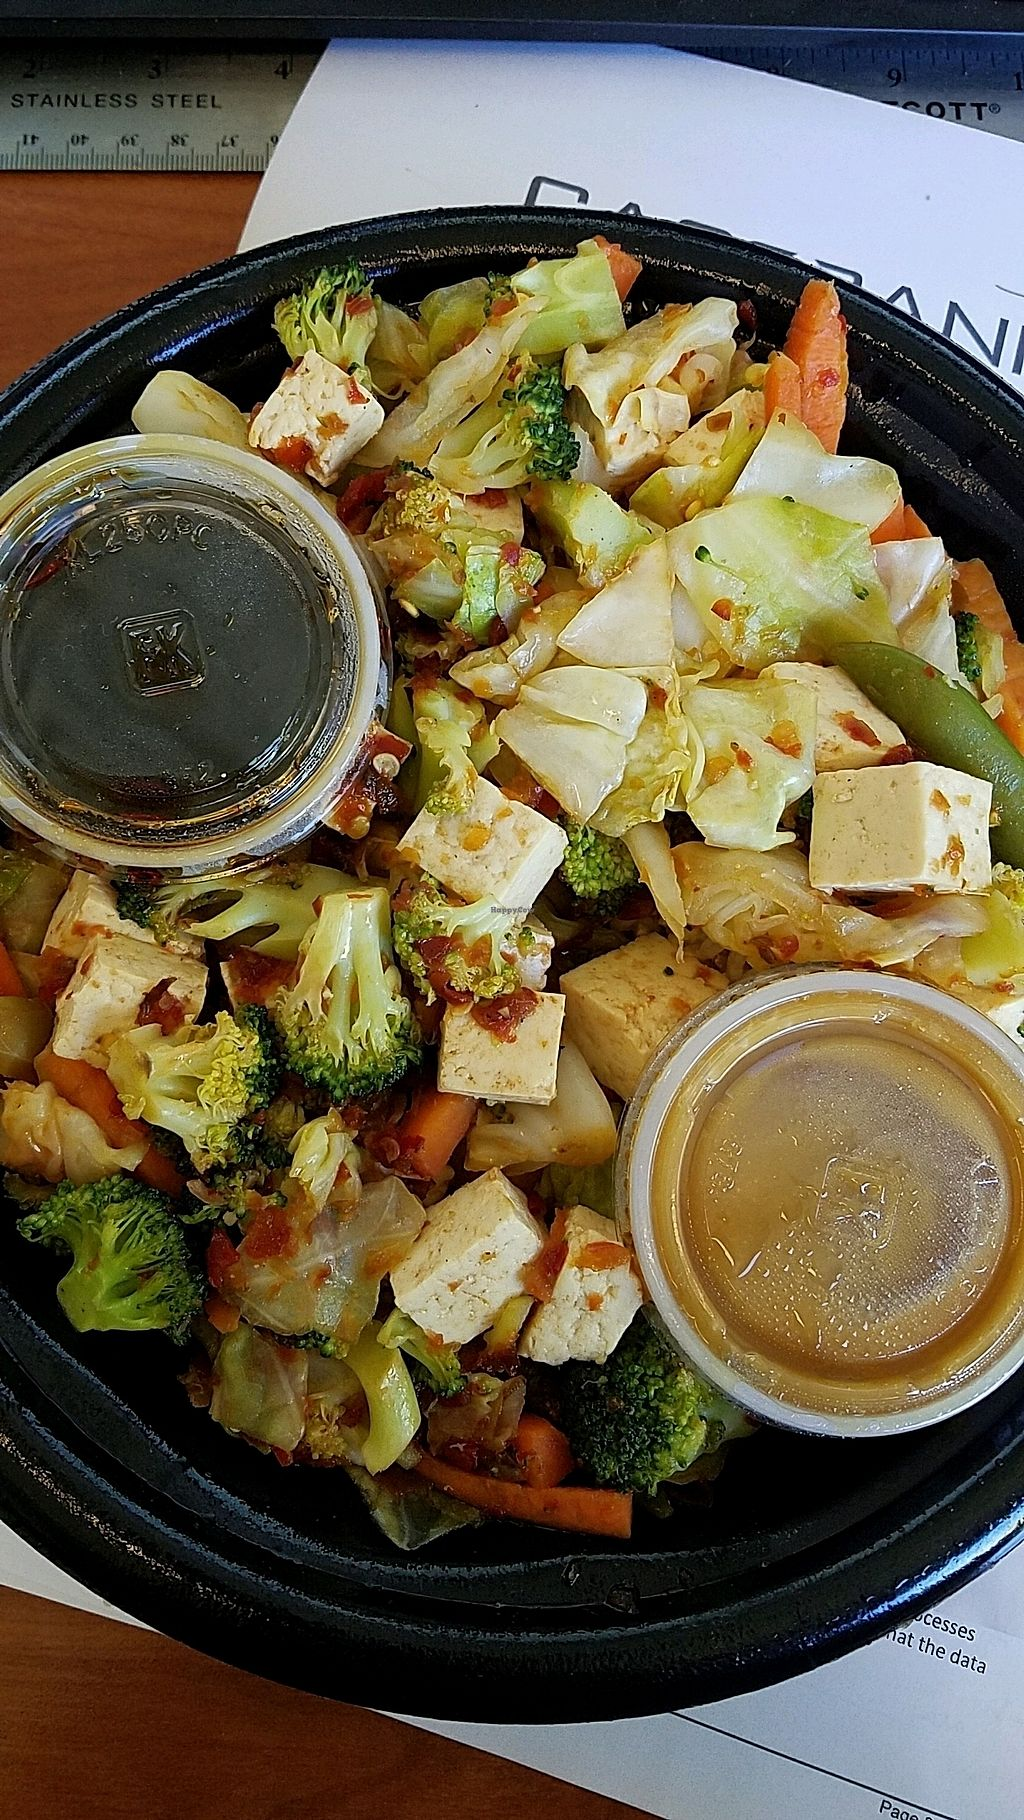 """Photo of Teriyaki Grill  by <a href=""""/members/profile/lv2compute"""">lv2compute</a> <br/>Veggie Delight bowl with tofu <br/> October 26, 2017  - <a href='/contact/abuse/image/103715/319092'>Report</a>"""